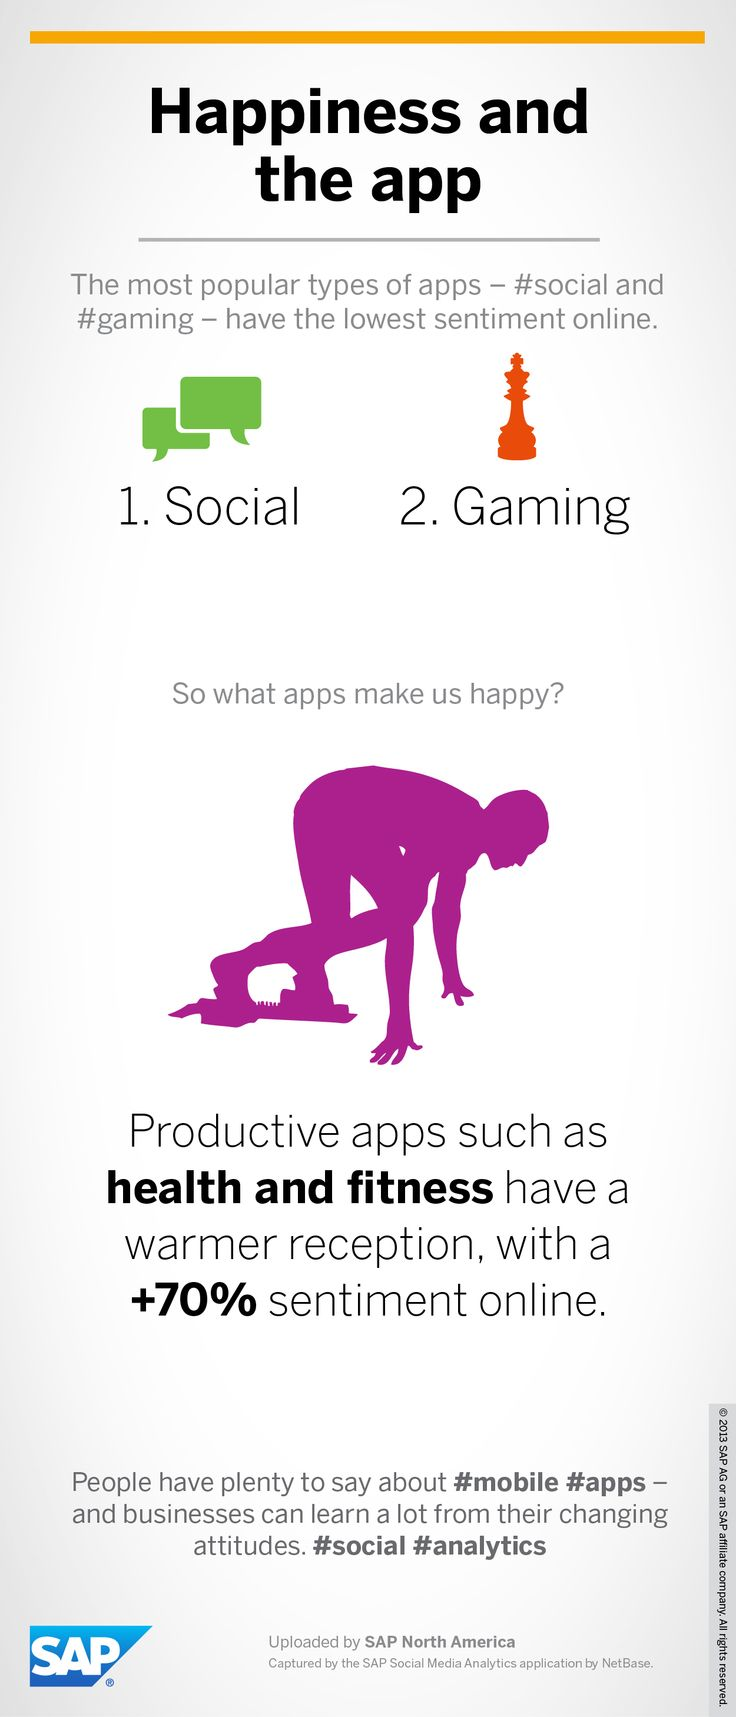 People are more receptive to productive apps with a +70% sentiment online. See what apps make us happy. #apps #mobile